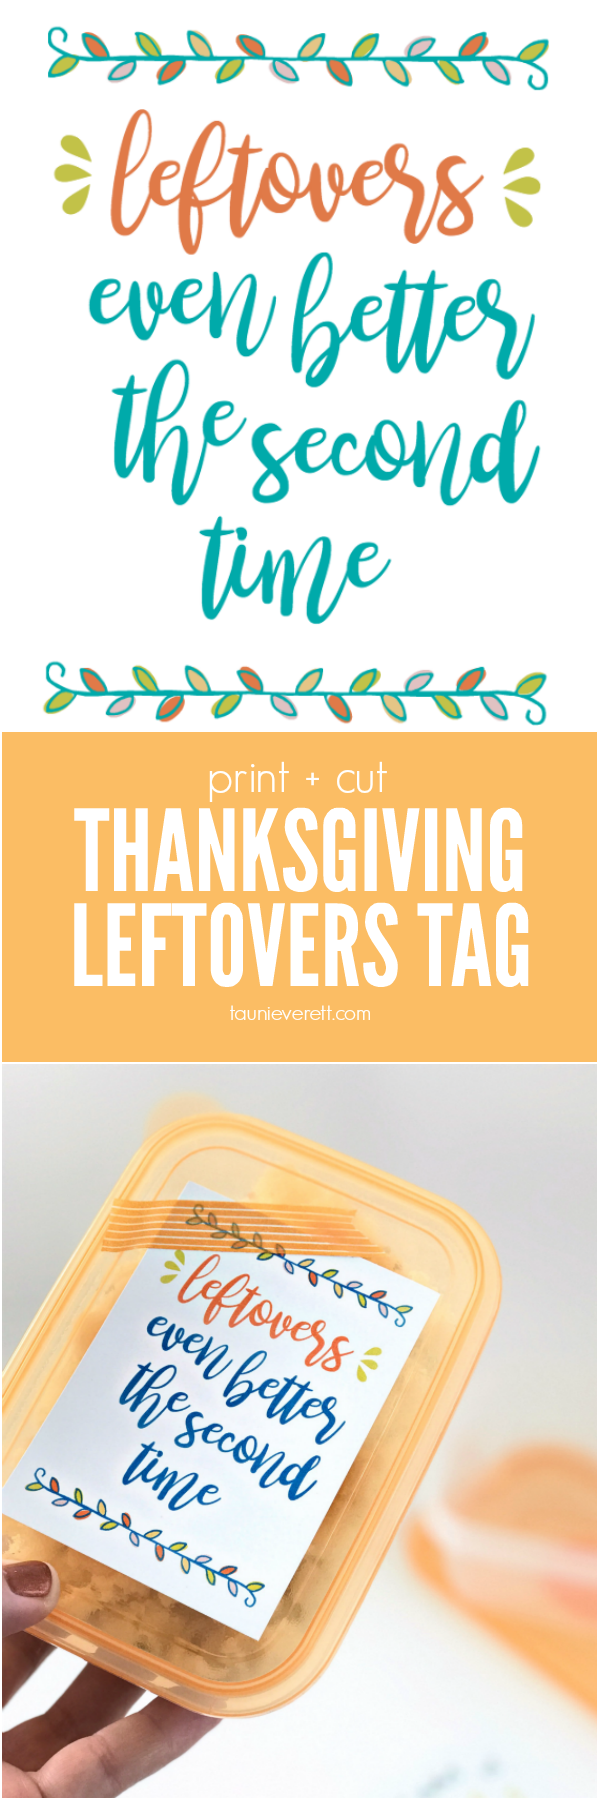 Thanksgiving Leftovers Gift Tag - perfect for thanking guests, labeling leftovers and providing storage/heating instructions. #thanksgiving #thanksgivingleftovers #turkey